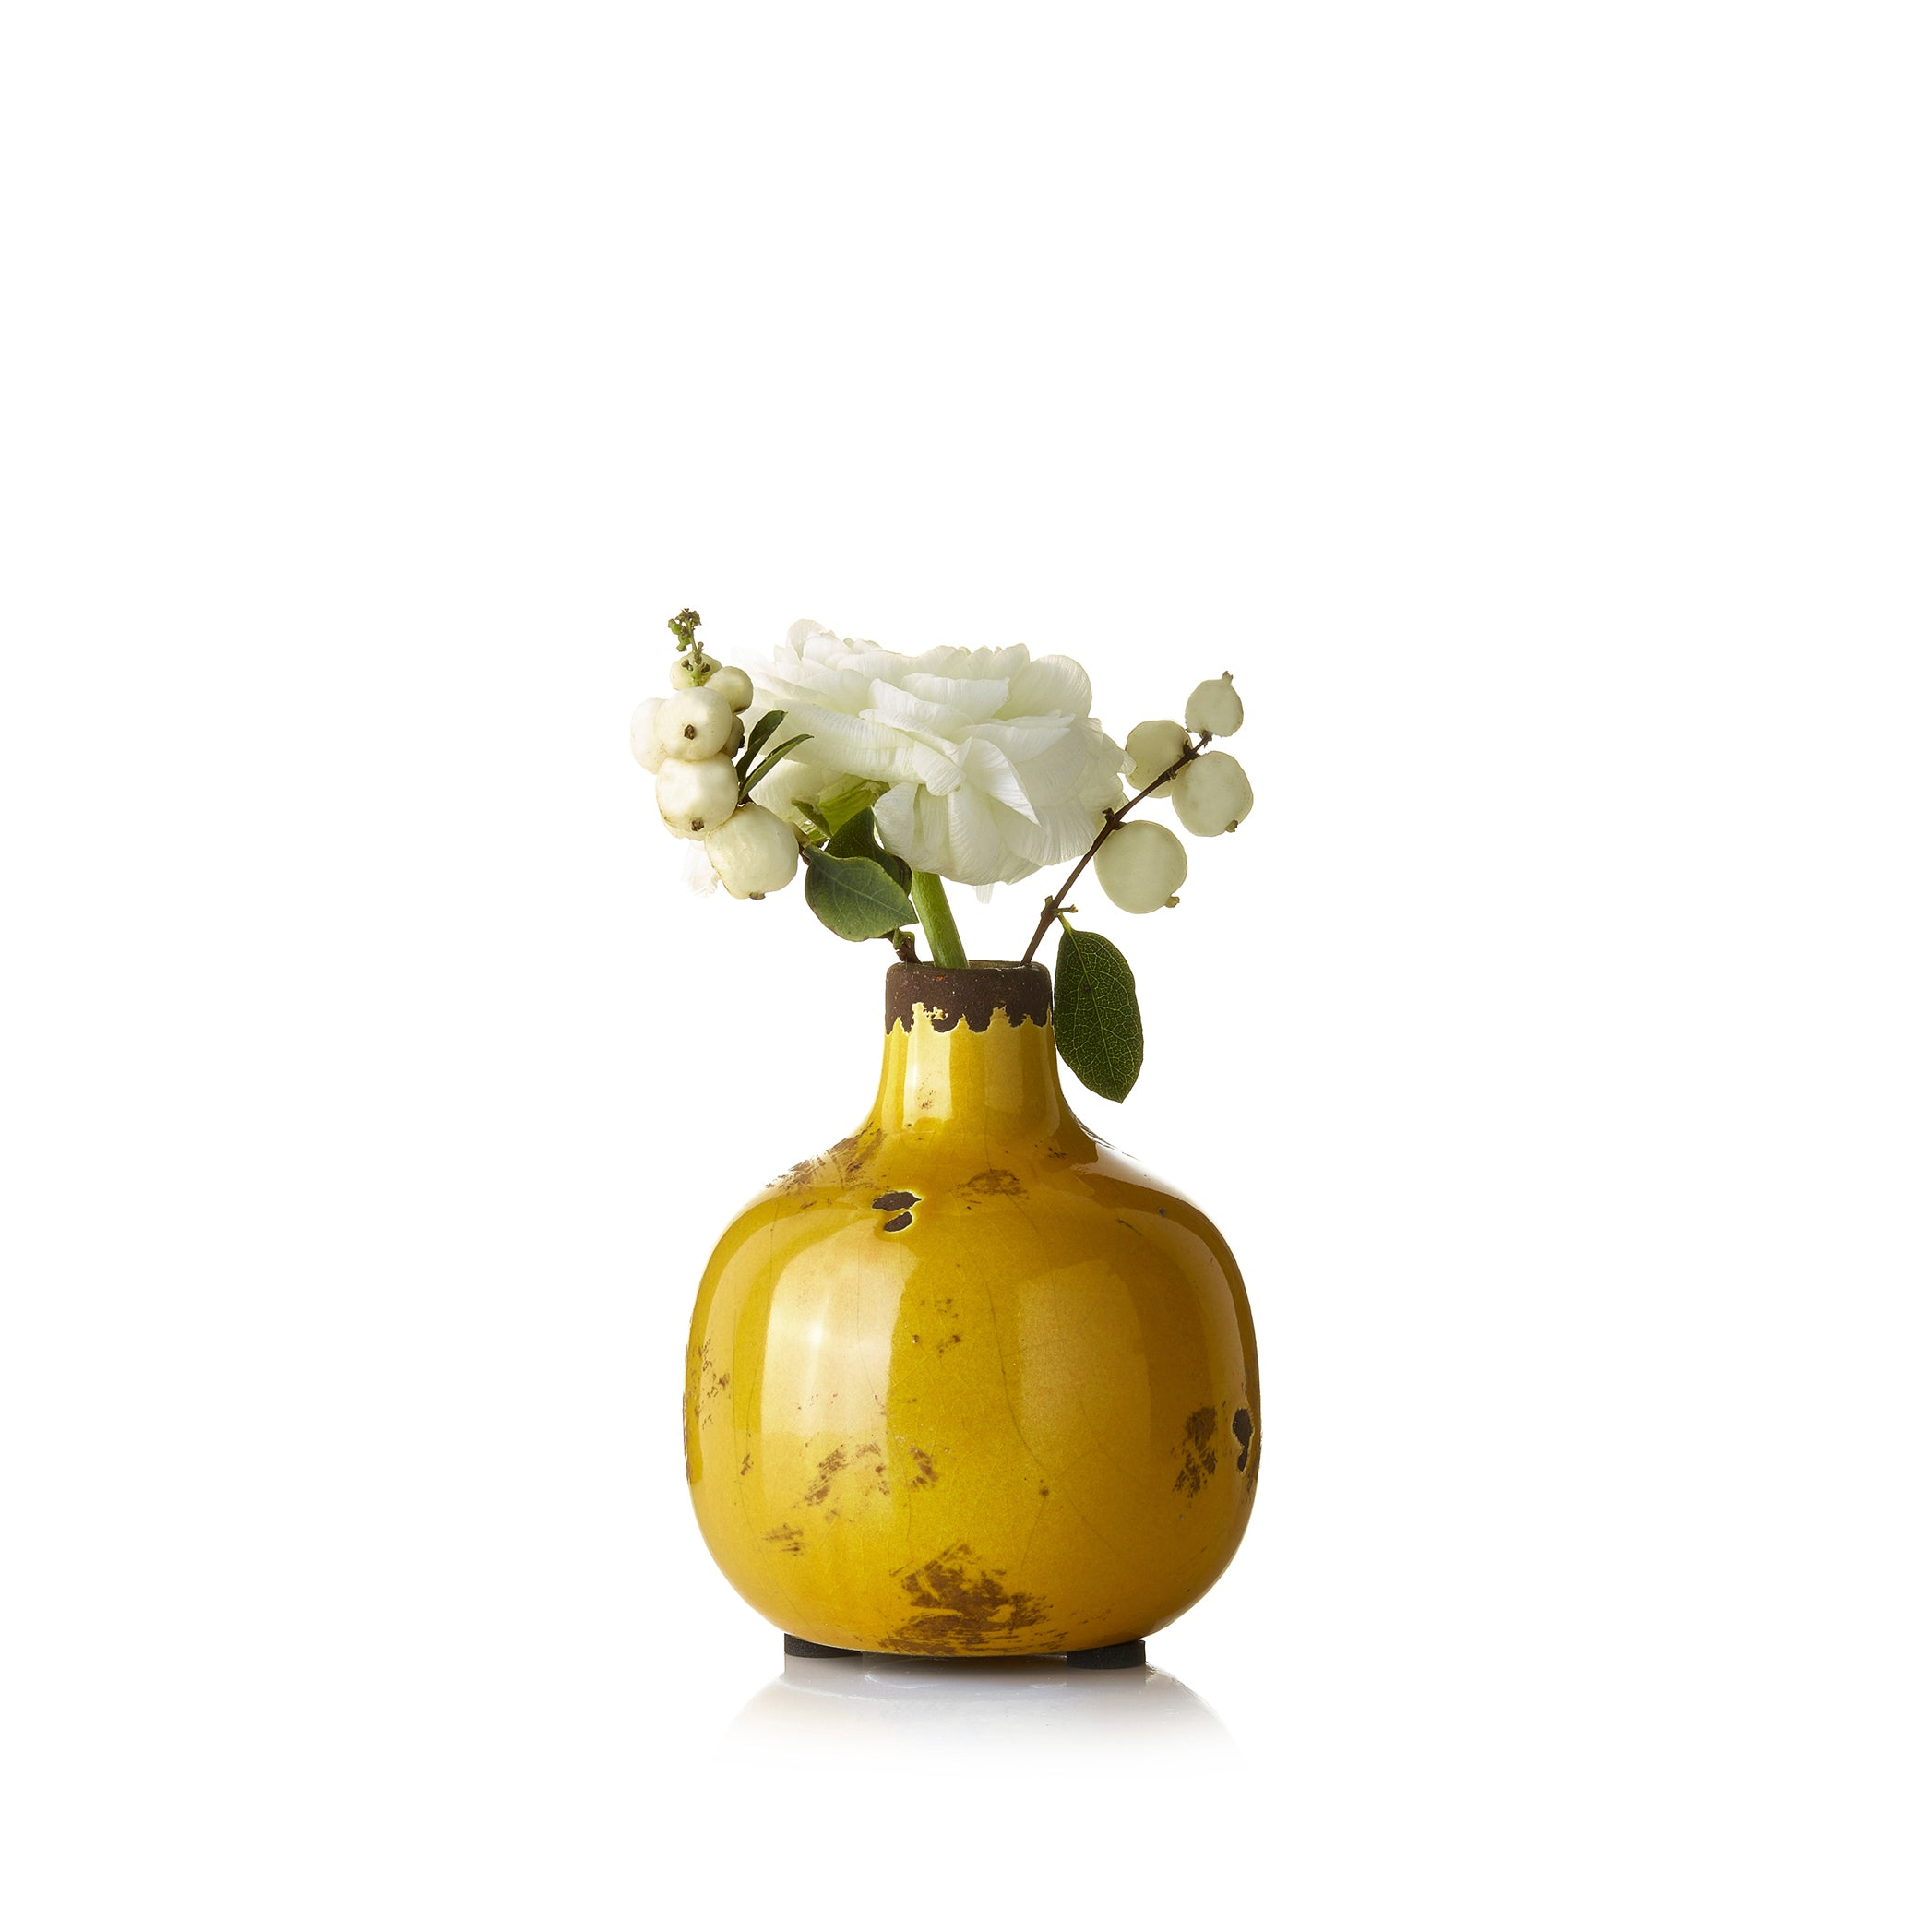 Ceramic Crackled Vase in Yellow